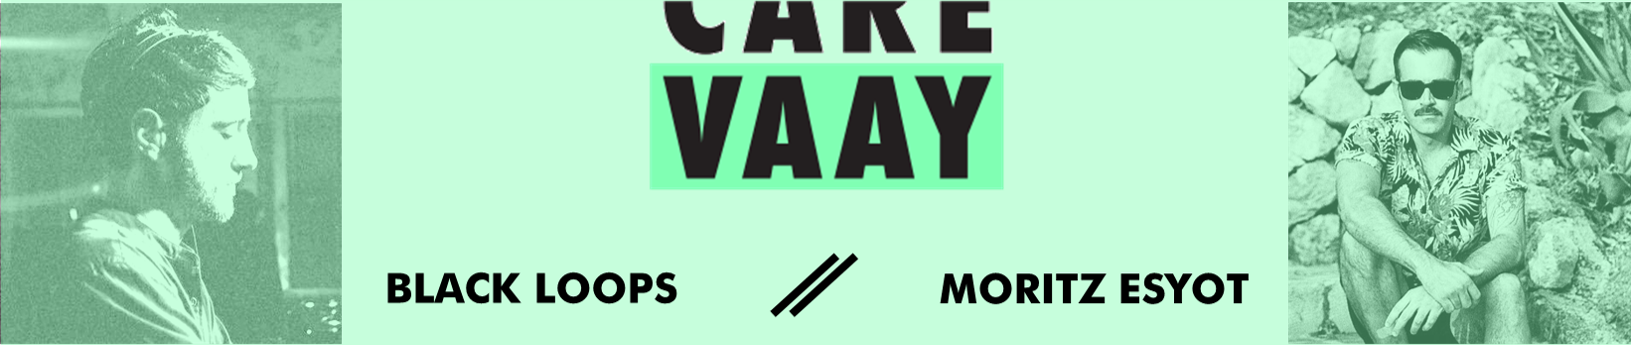 DJ Black Loops and DJ Moritz Esyot featured by VAAY